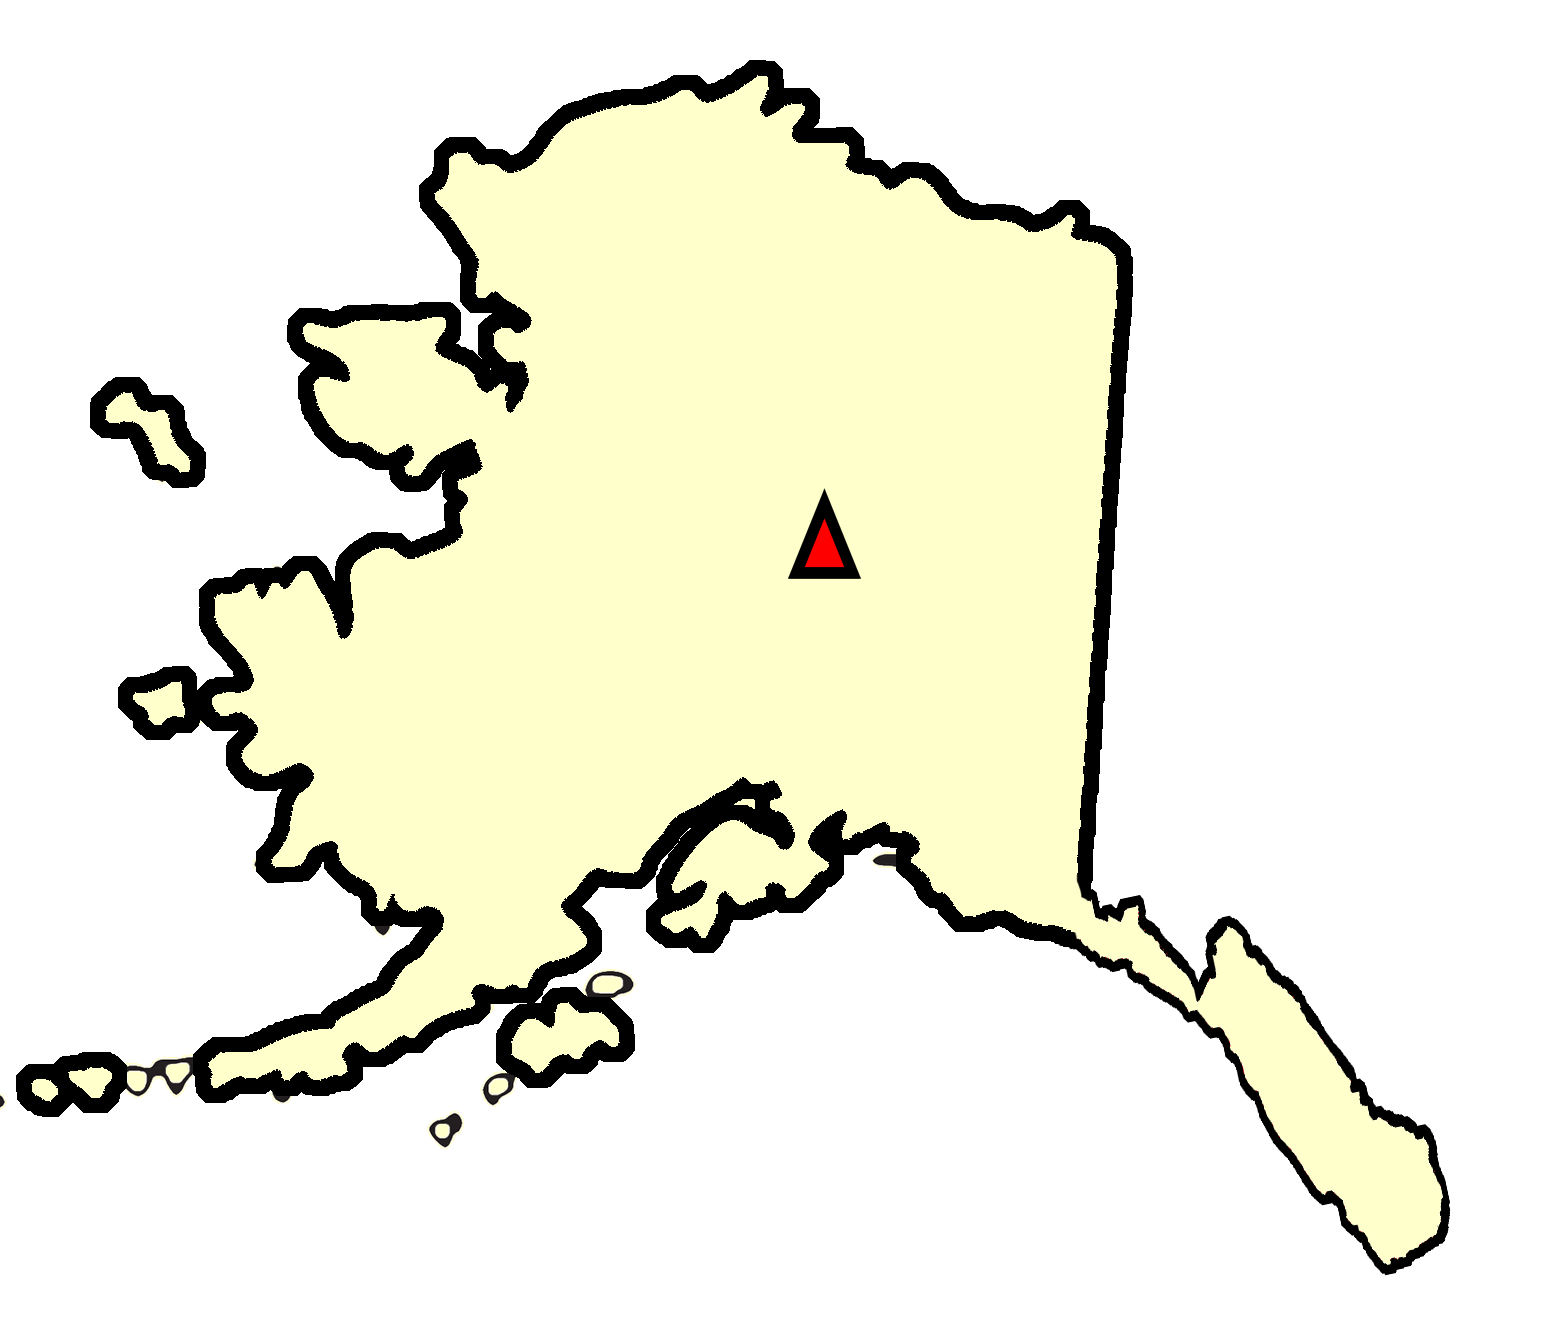 State map location for AK Fairbanks